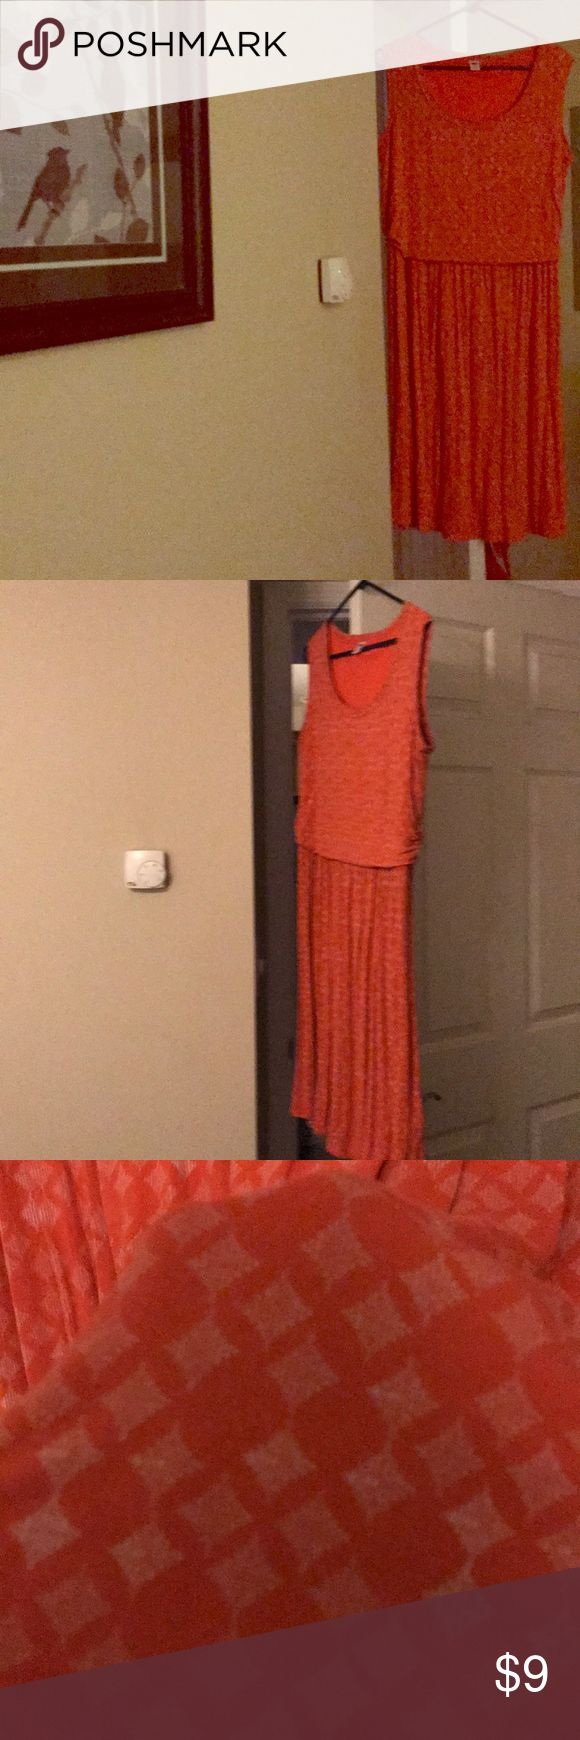 1x Old Navy Sun Dress A great dress for the summer that works well into autumn. Lightly worn, VERY Comfortable. A nice wv Ru day go-to. Old Navy Dresses Midi